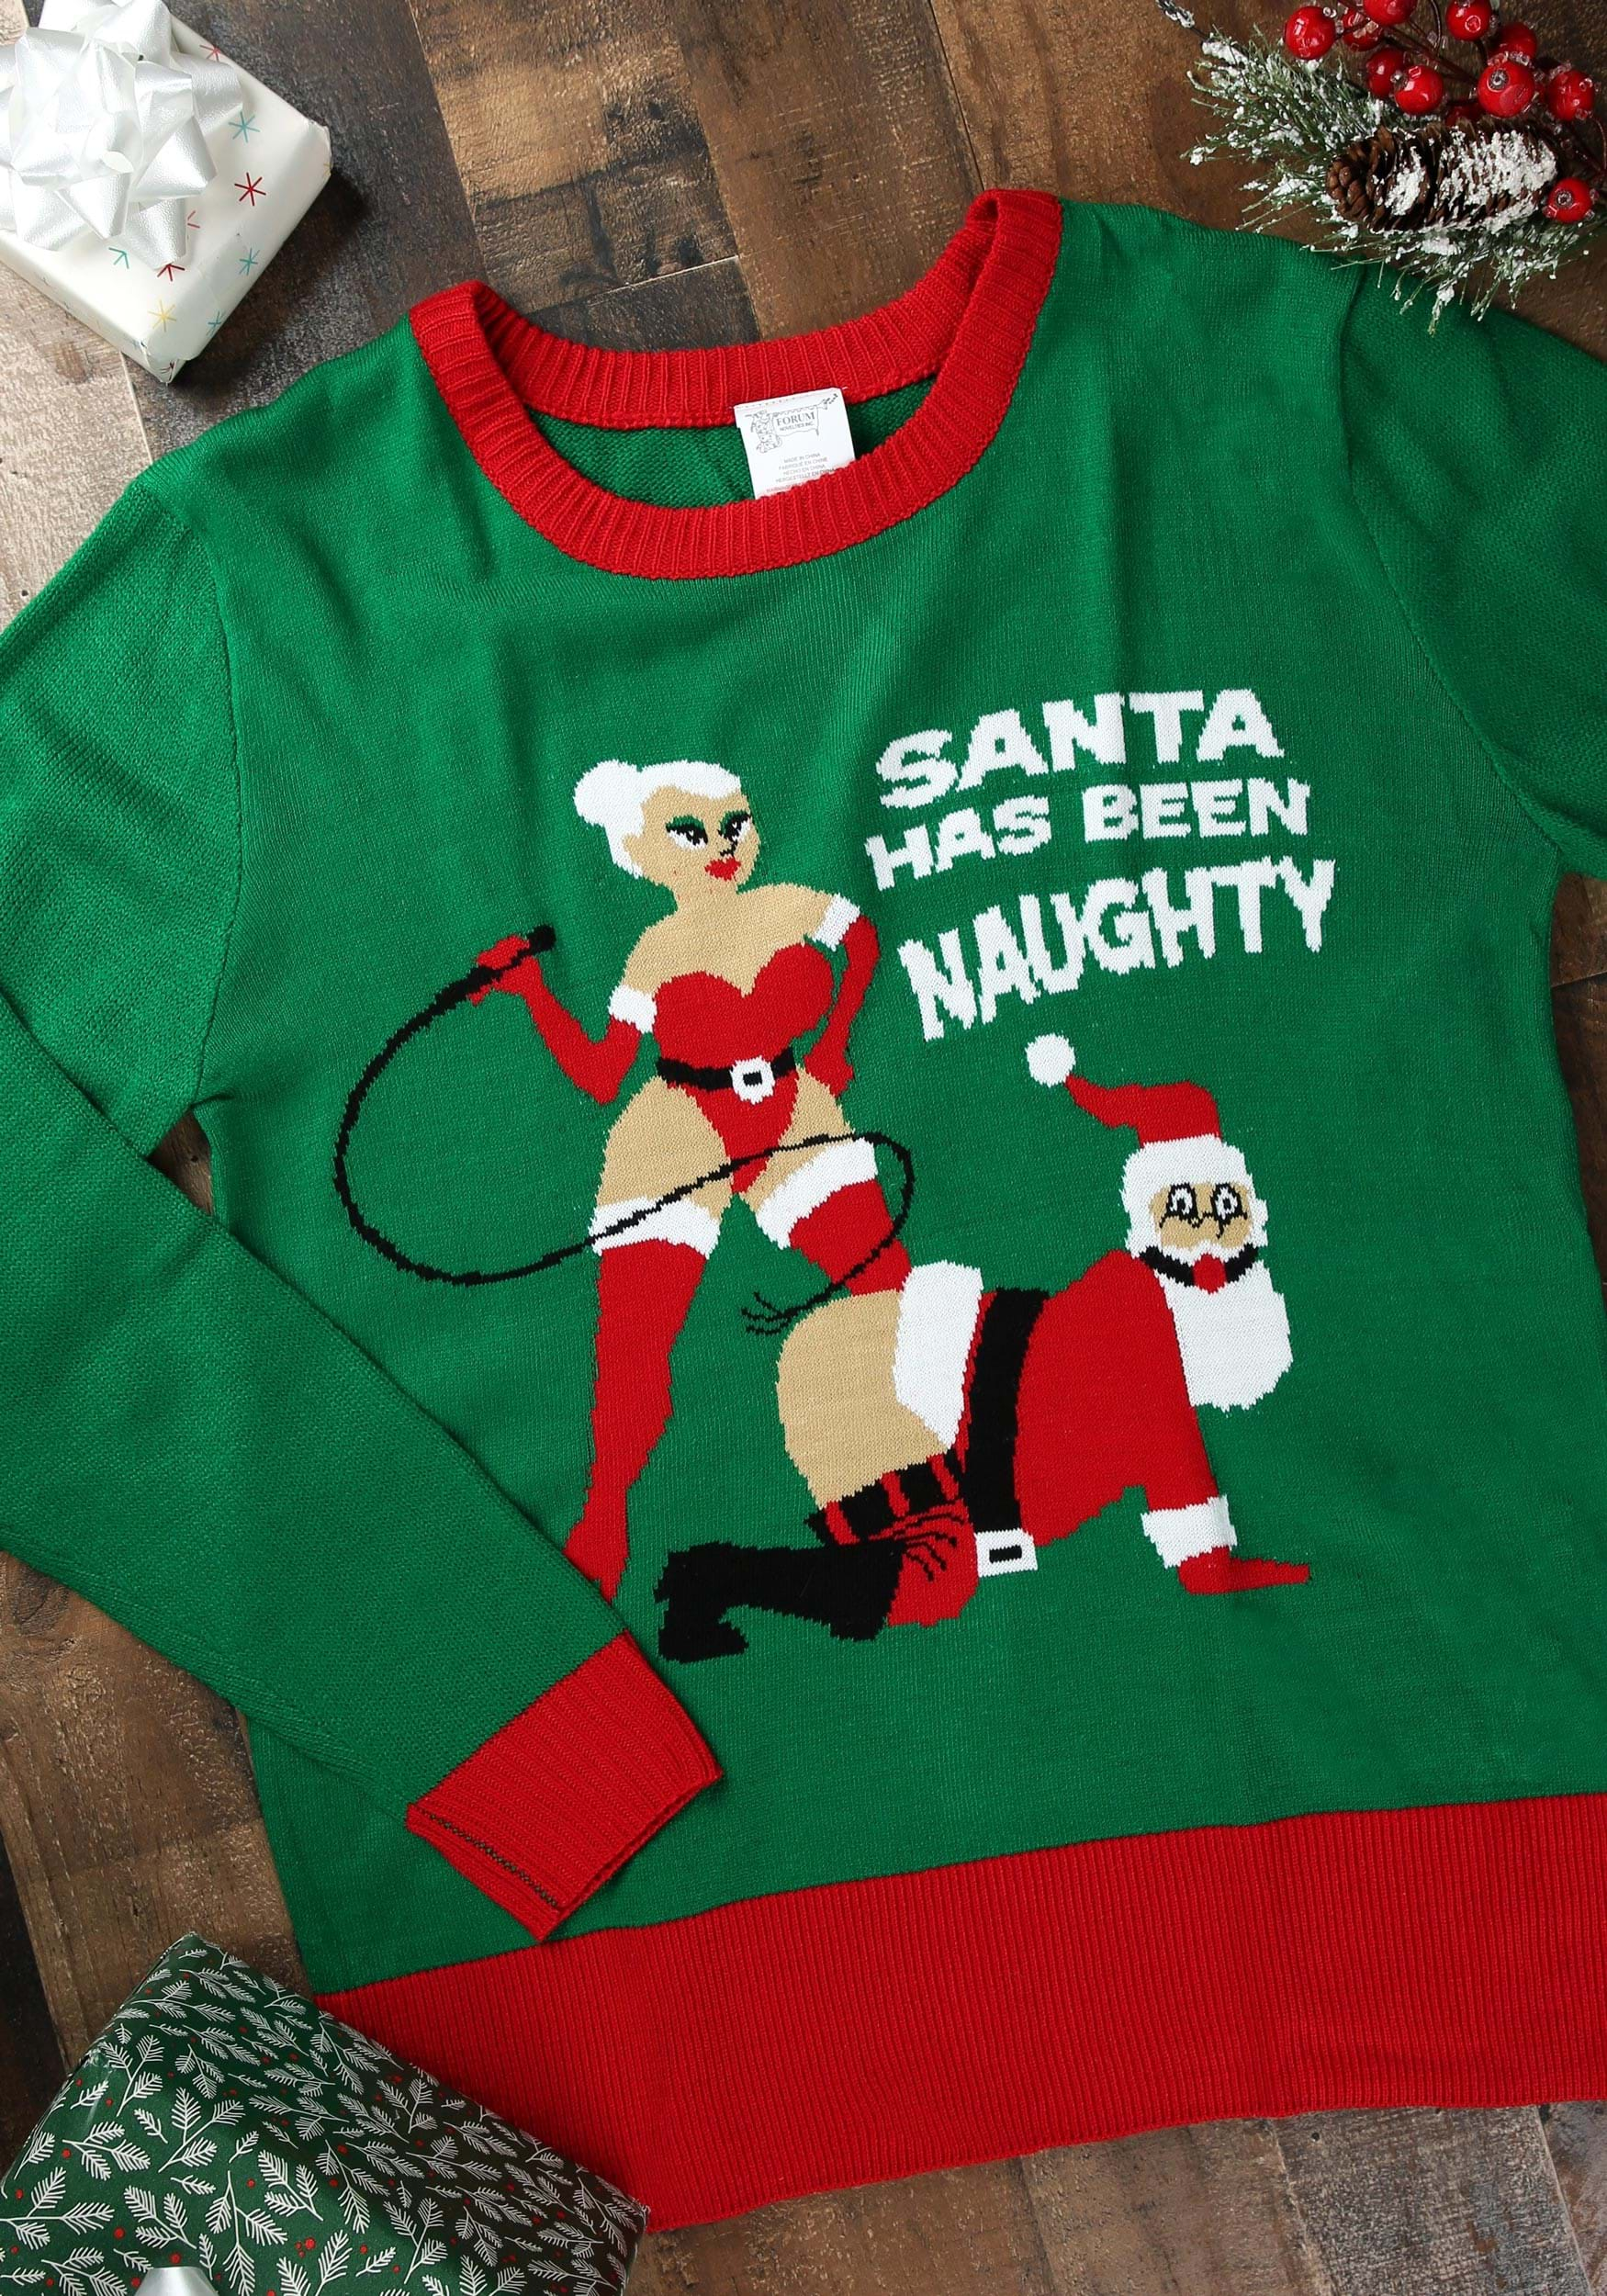 Best Ugly Christmas Sweater.Santa Has Been Naughty Ugly Christmas Sweater